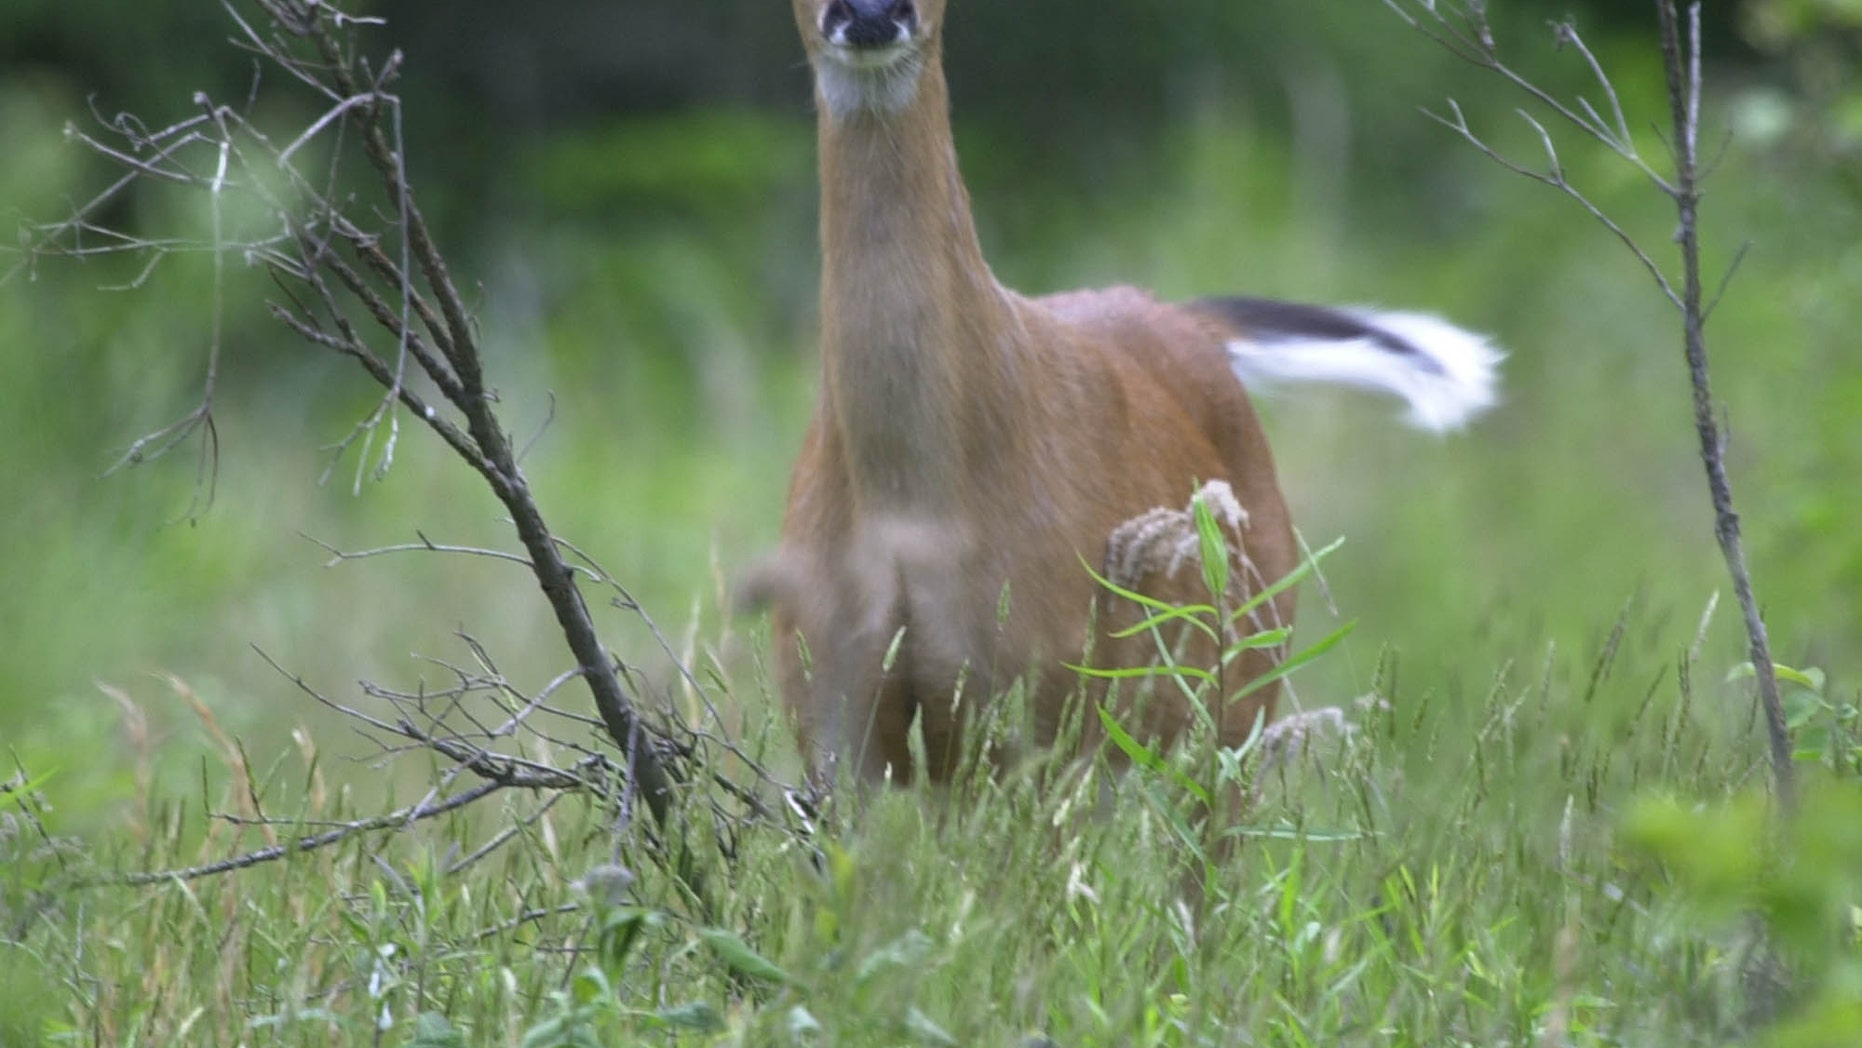 May 27, 2003: In a file photo, a White tailed deer flicks its tail as it stands alert while grazing in a field in Zelienople, Pa.